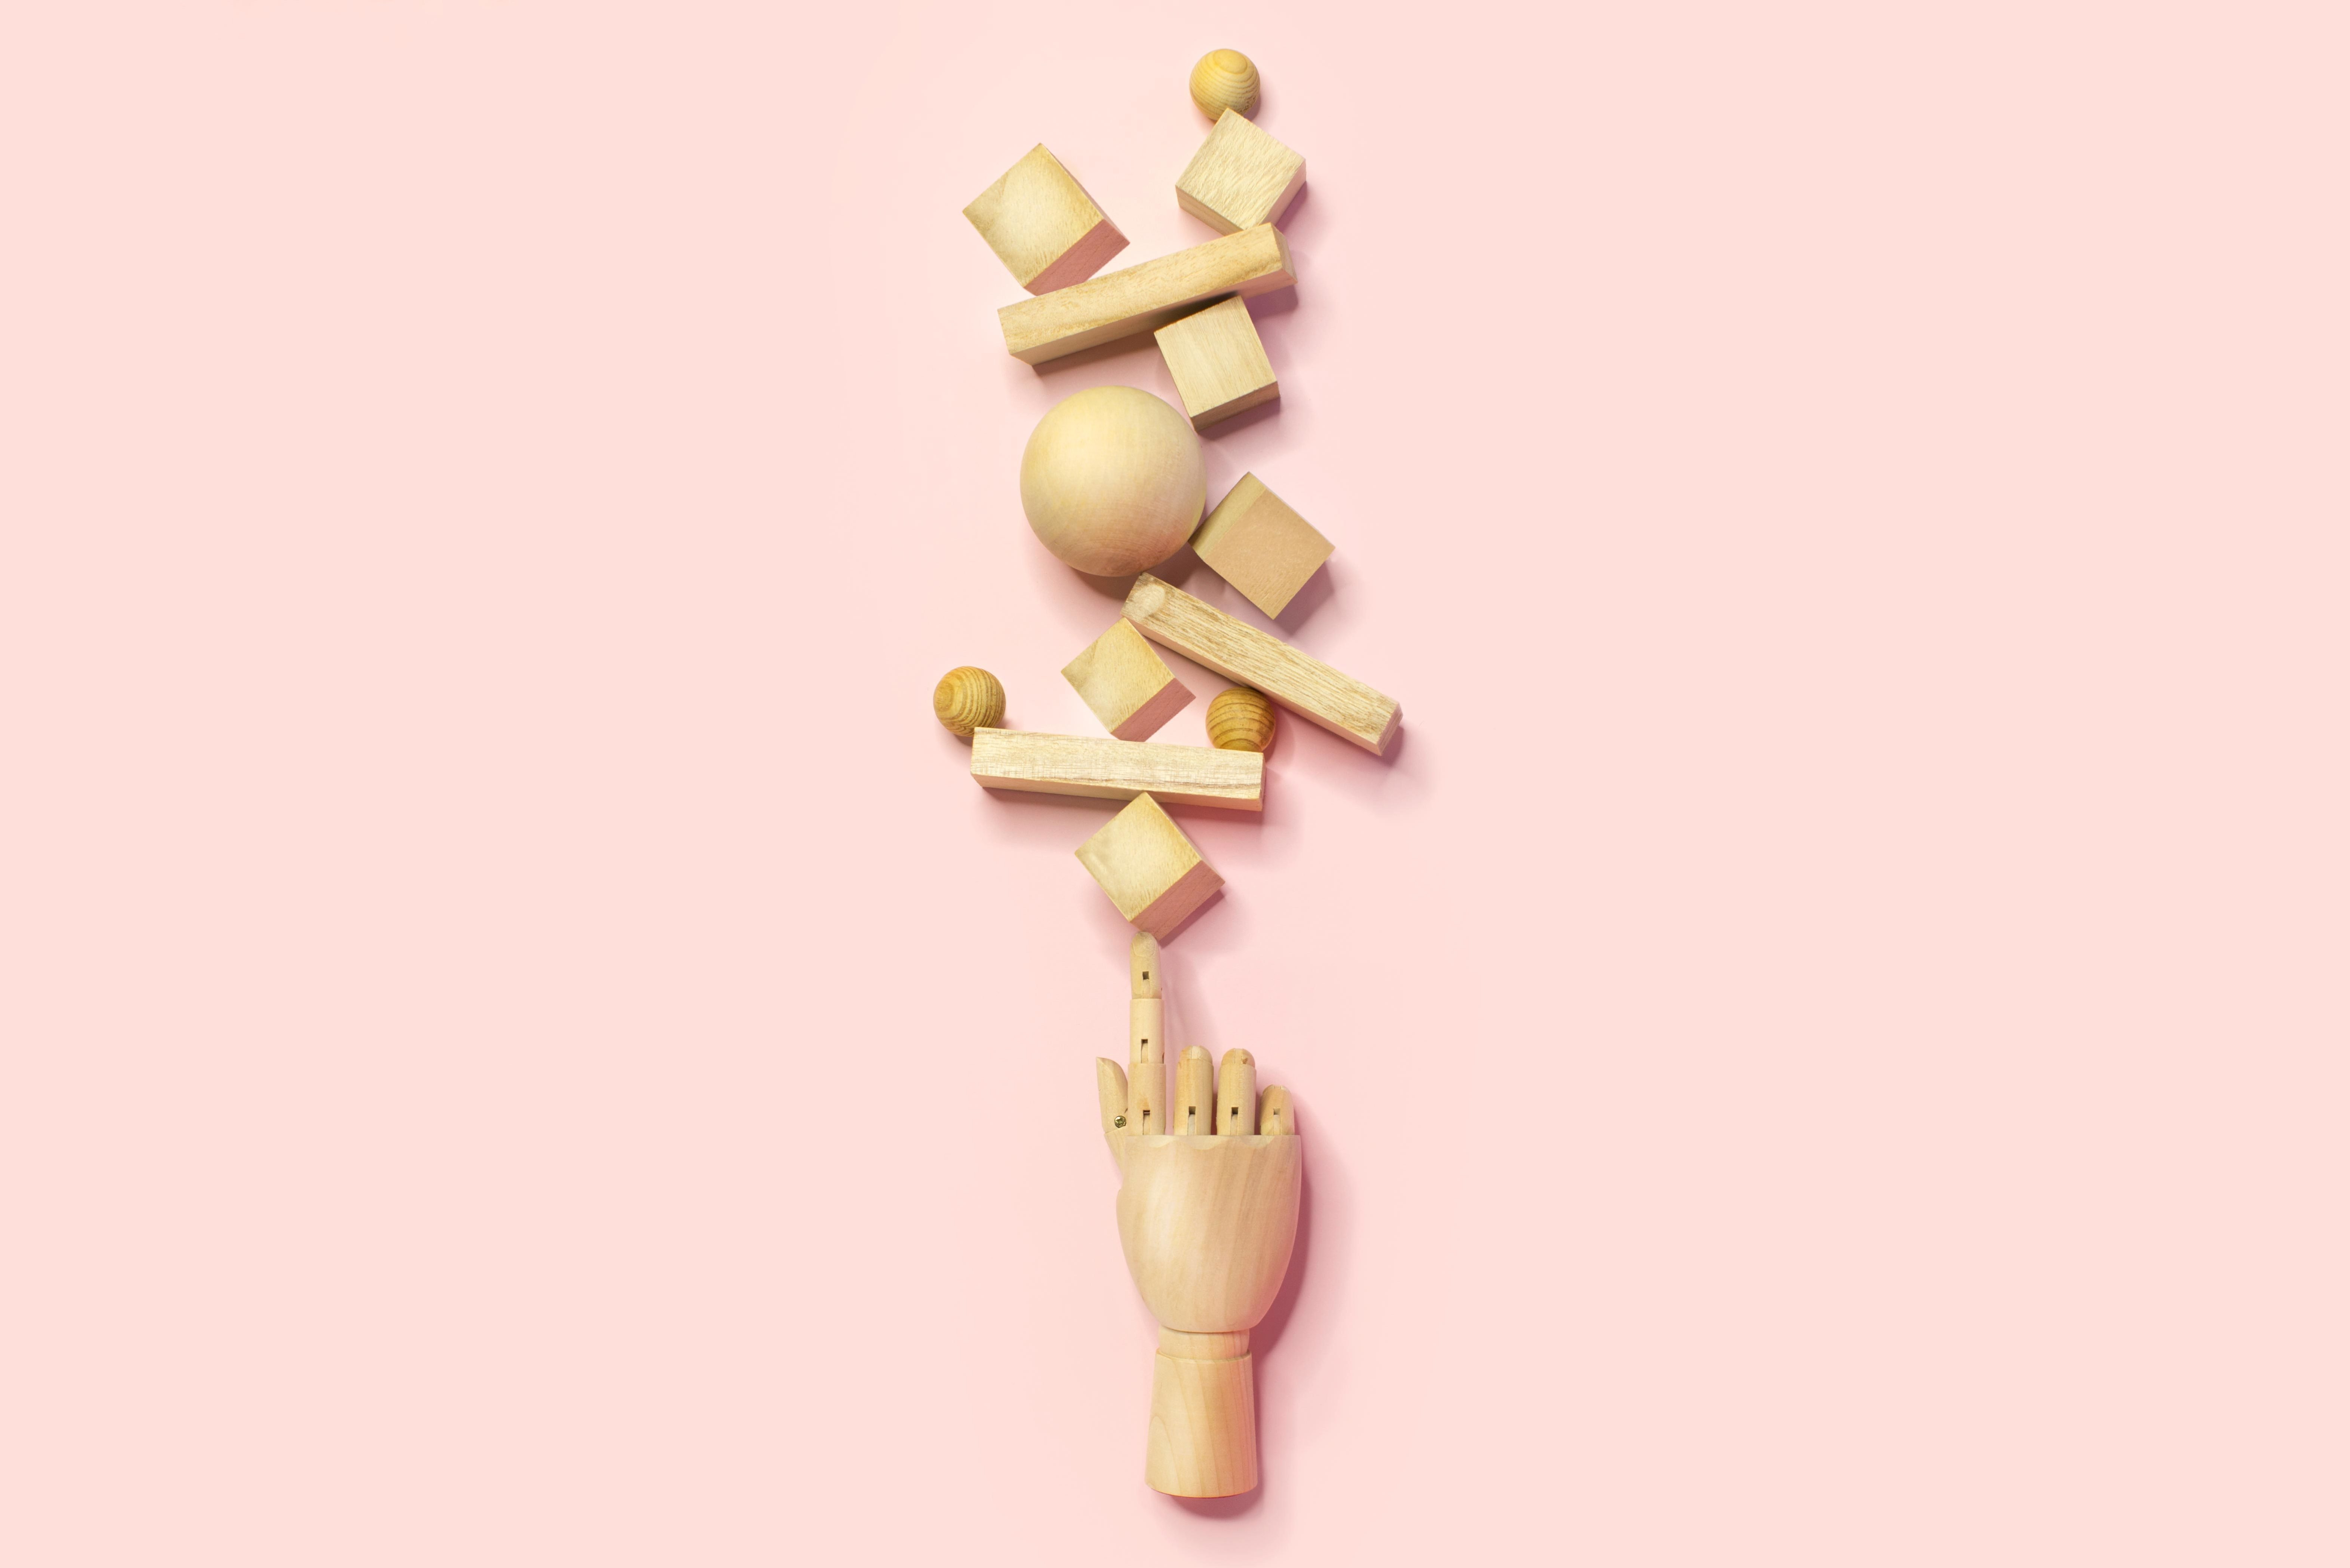 wooden hand balancing many different shapes and sizes blocks. multitasking concept.